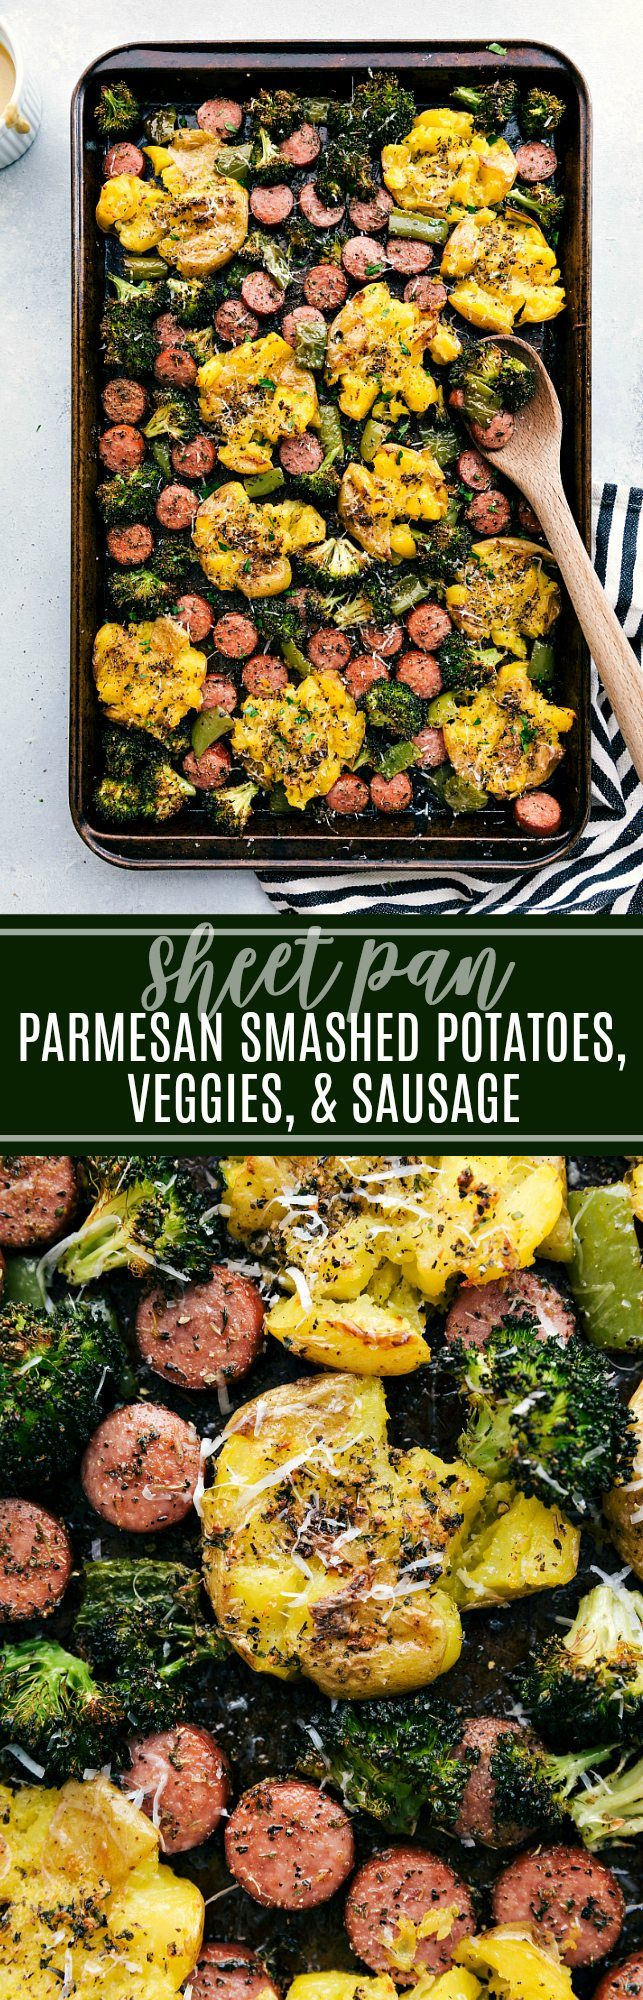 SHEET PAN Italian Sausage, Roasted Veggies, and Crispy Garlic Parmesan Smashed Potatoes chelseasmessyapron.com